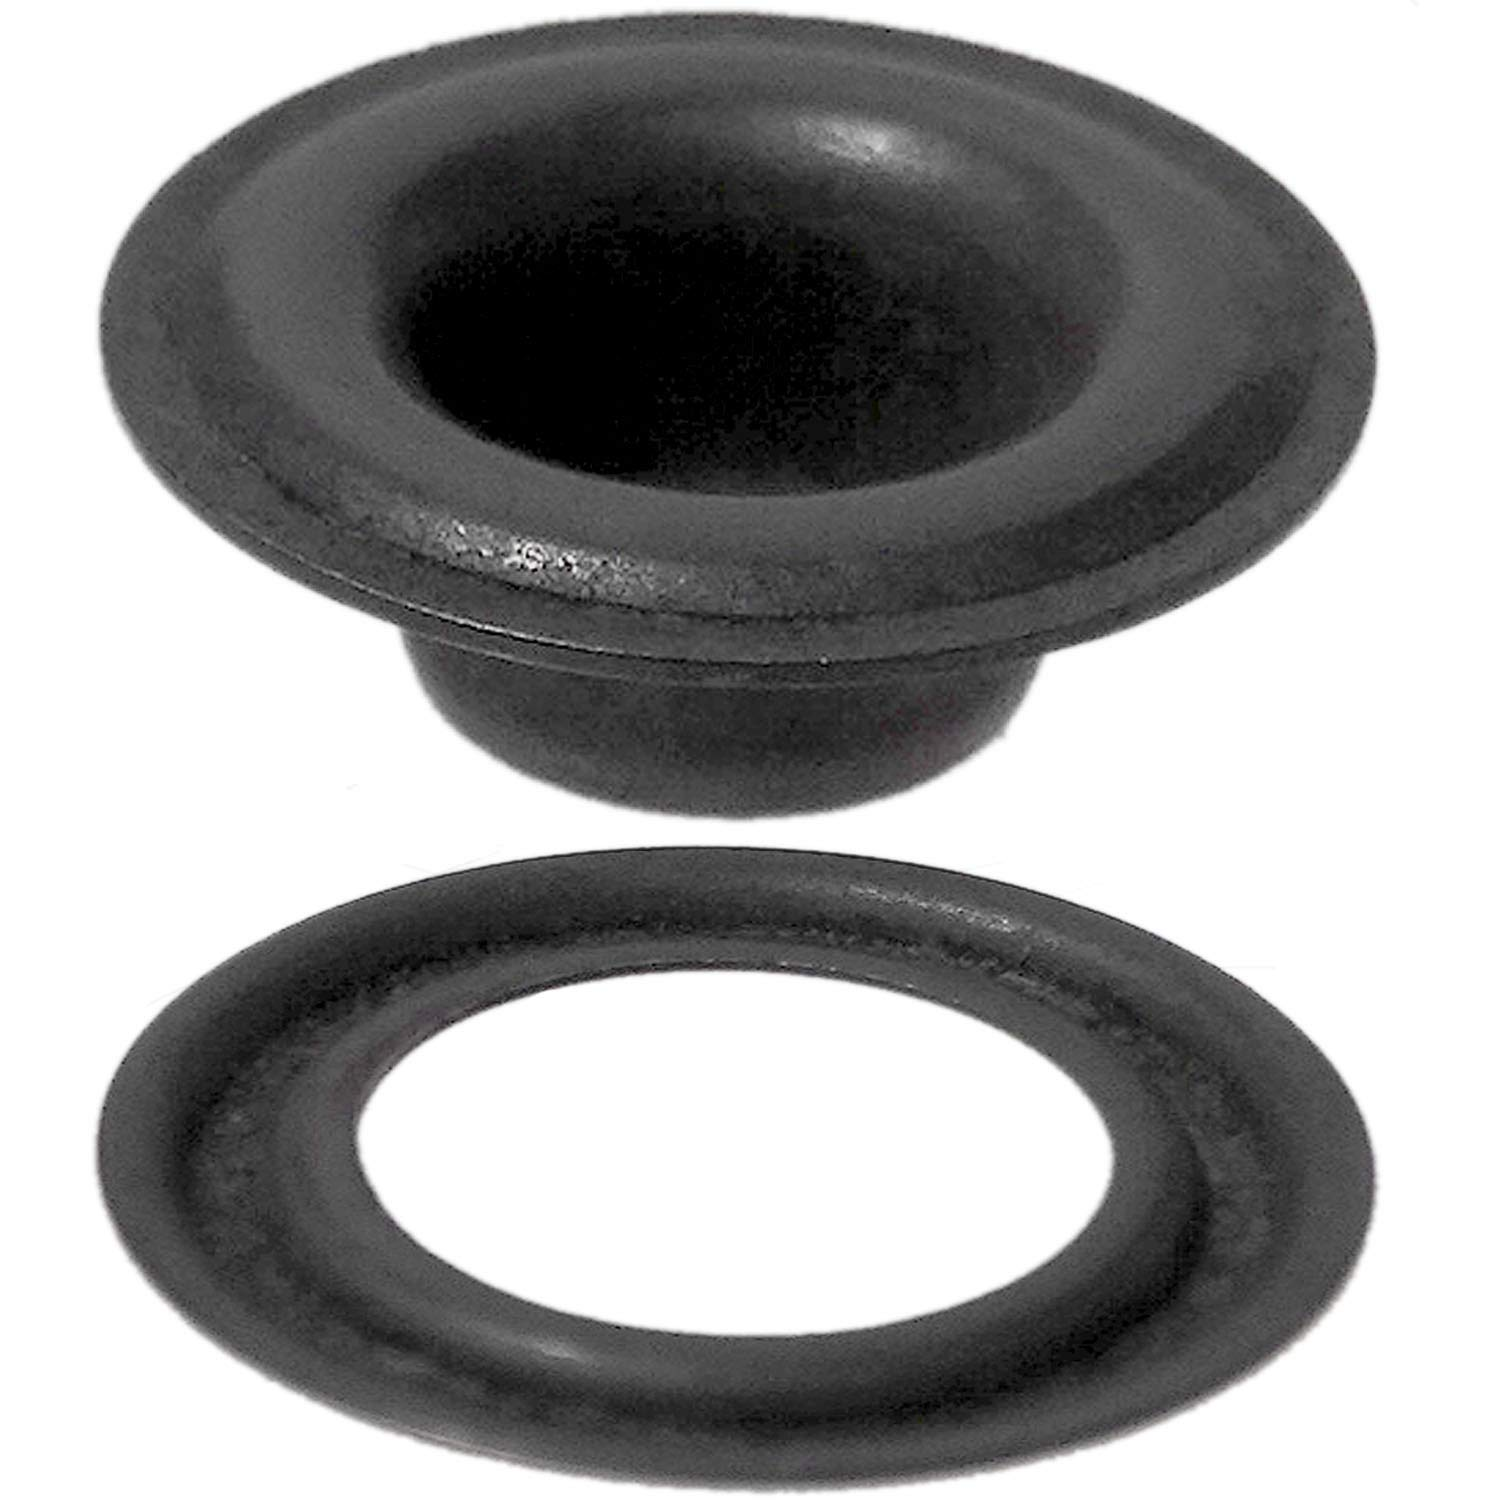 Stimpson Self-Piercing Grommet and Washer Dull Black Chem Reliable, Durable, Heavy-Duty #1 Set (750 Pieces of Each)